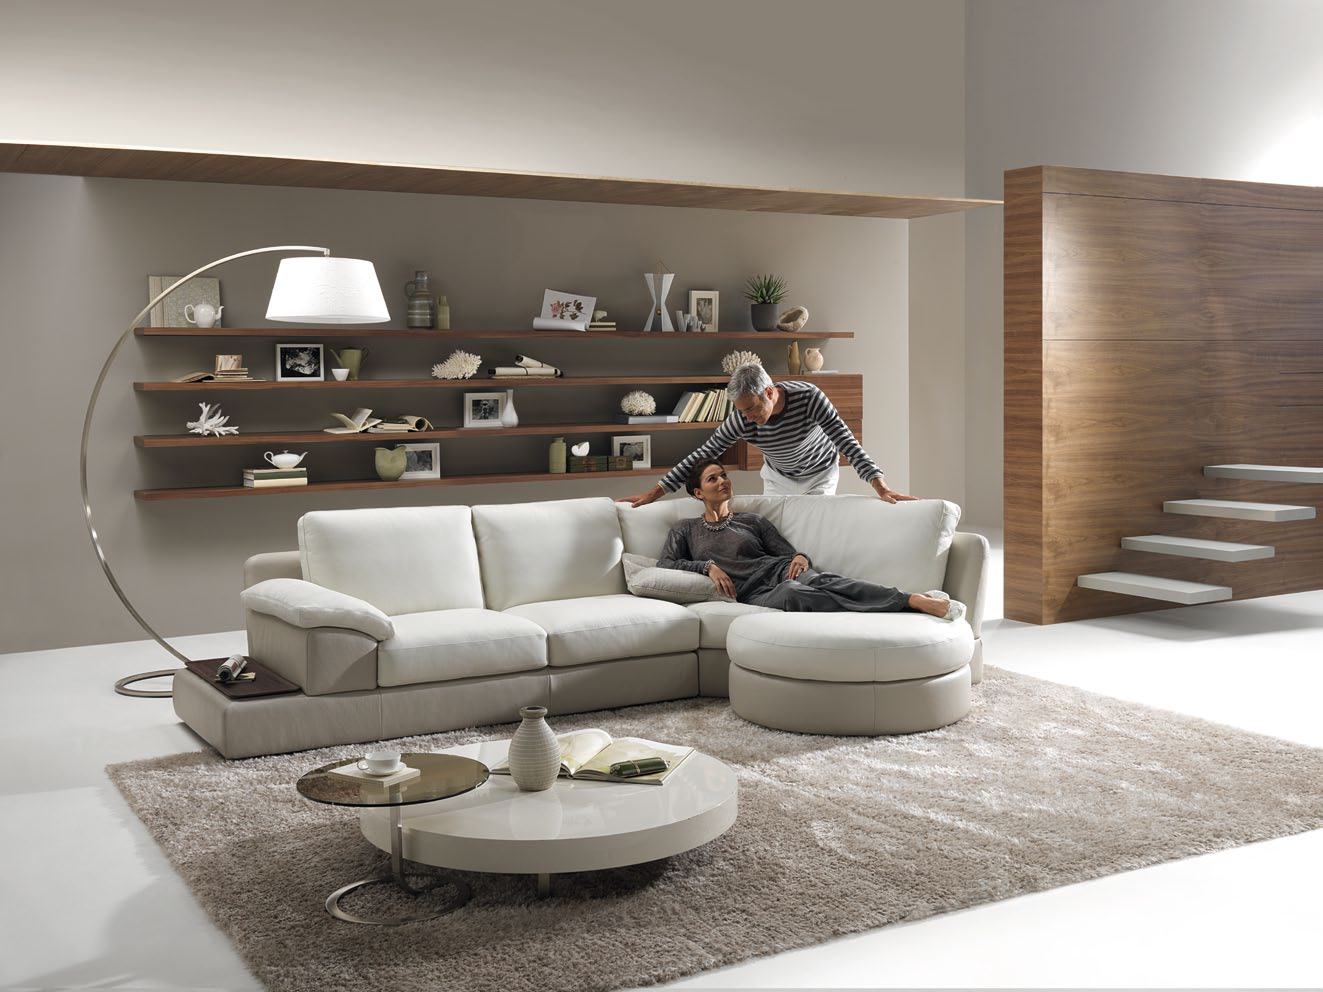 best modular furniture. Interior Exterior Plan | Use Modular Sofa And Be Able To Add Or Remove Its Pieces Best Furniture E